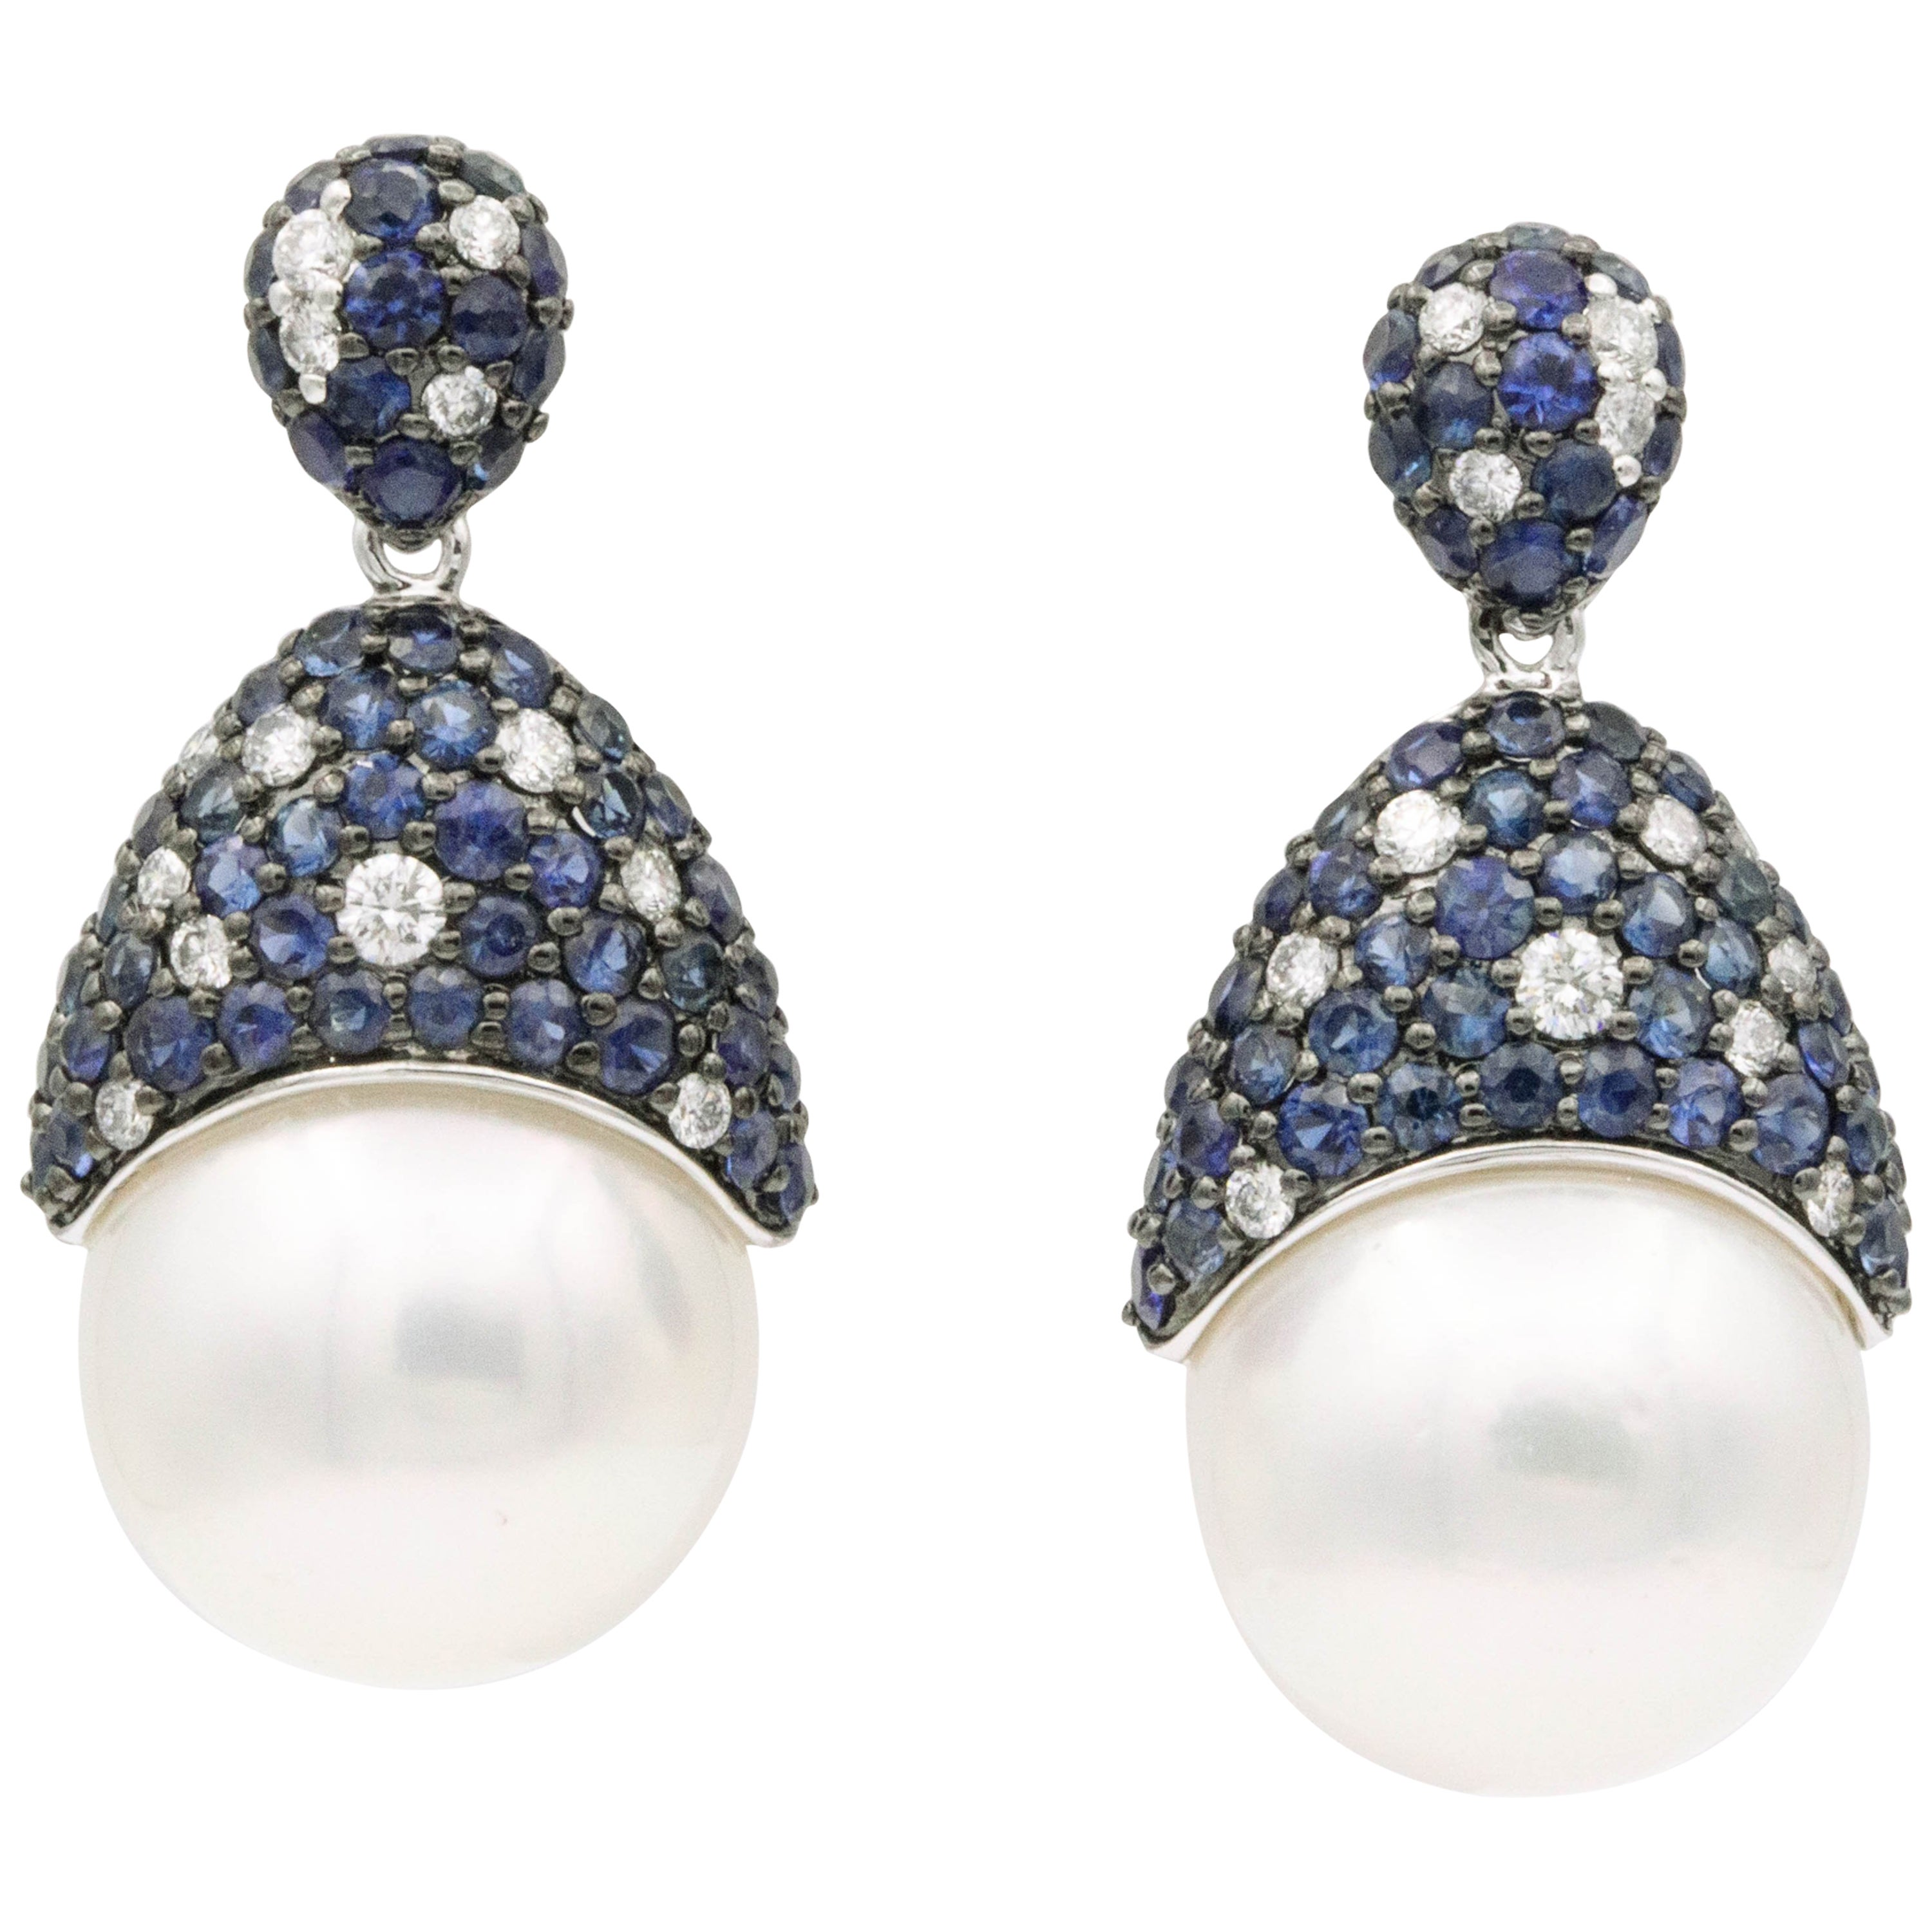 Sapphire and Diamonds with South Sea Pearl Earrings